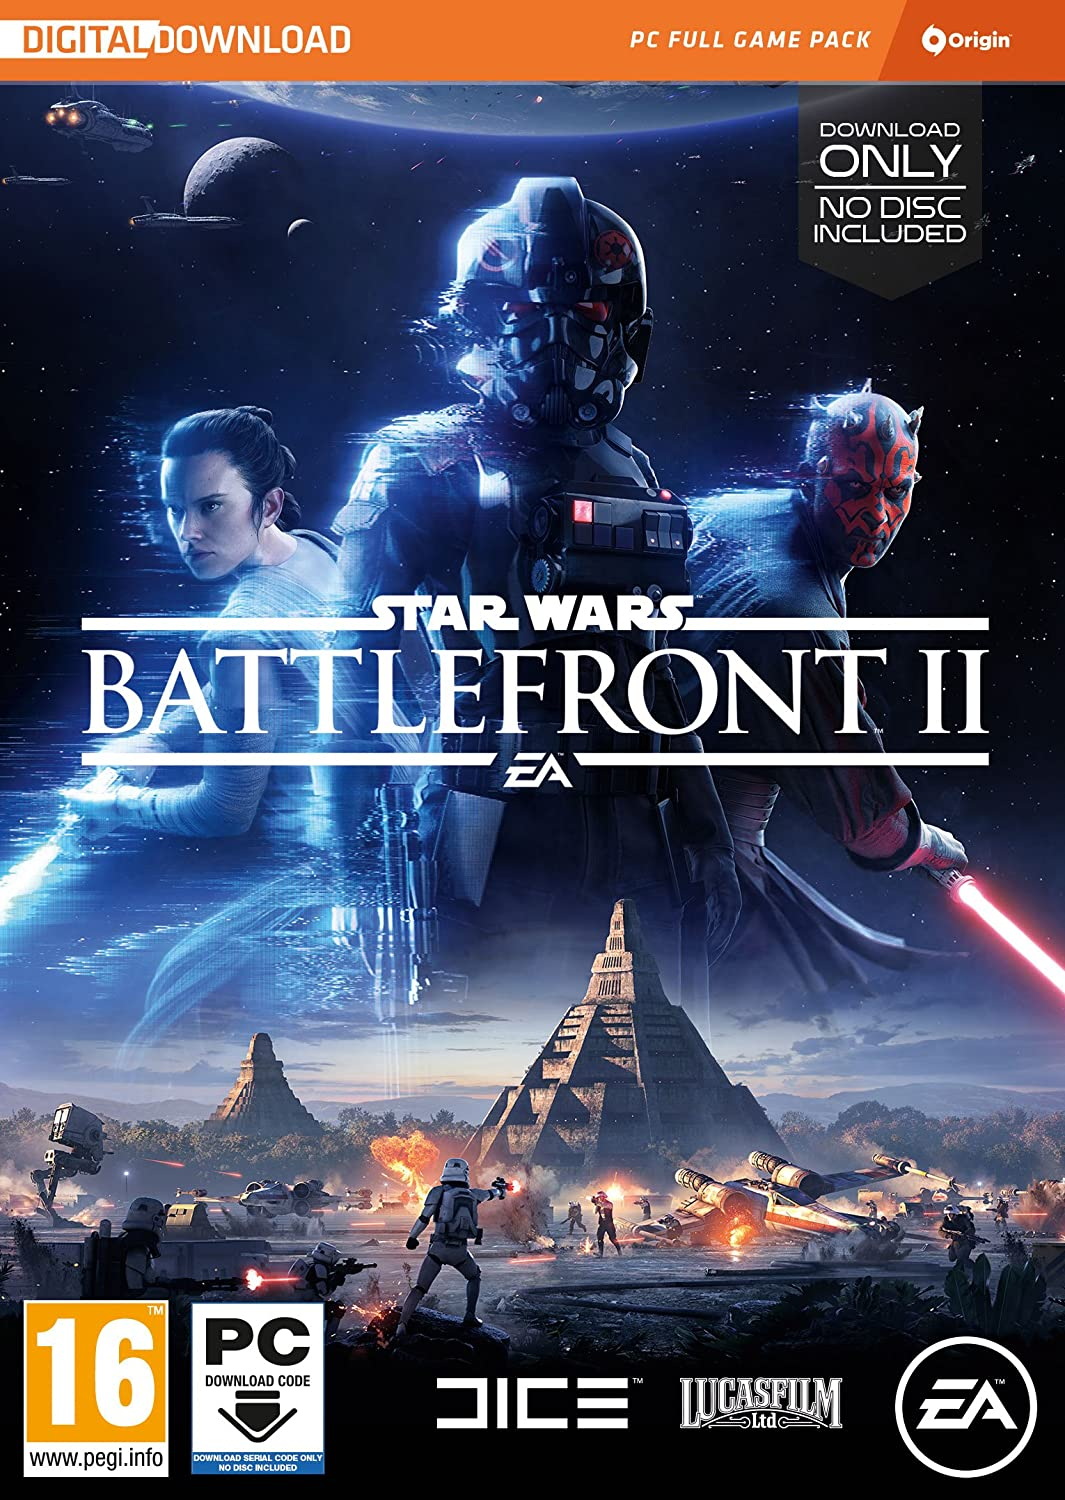 Star Wars Battlefront 2 (PC Code in a Box): Amazon co uk: PC